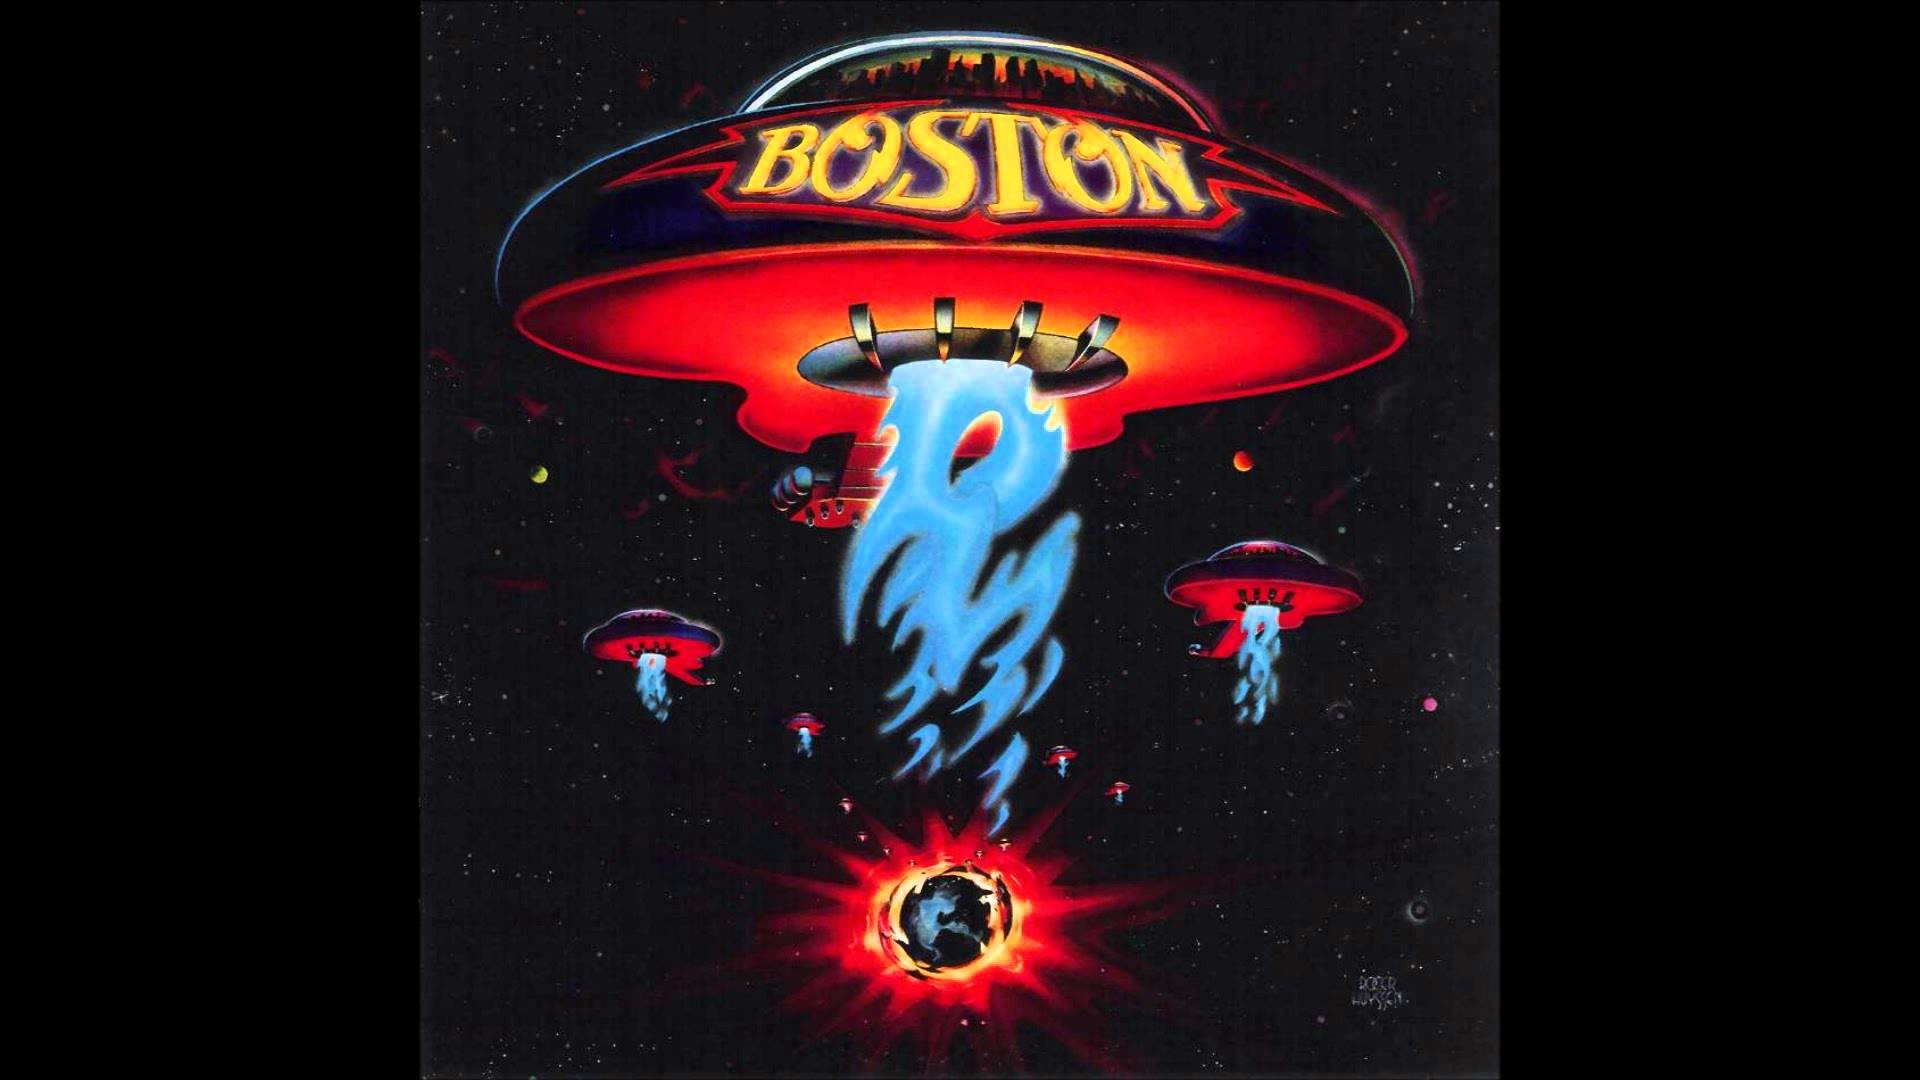 1920x1080 Boston - Rock And Roll Band (LP Rip)